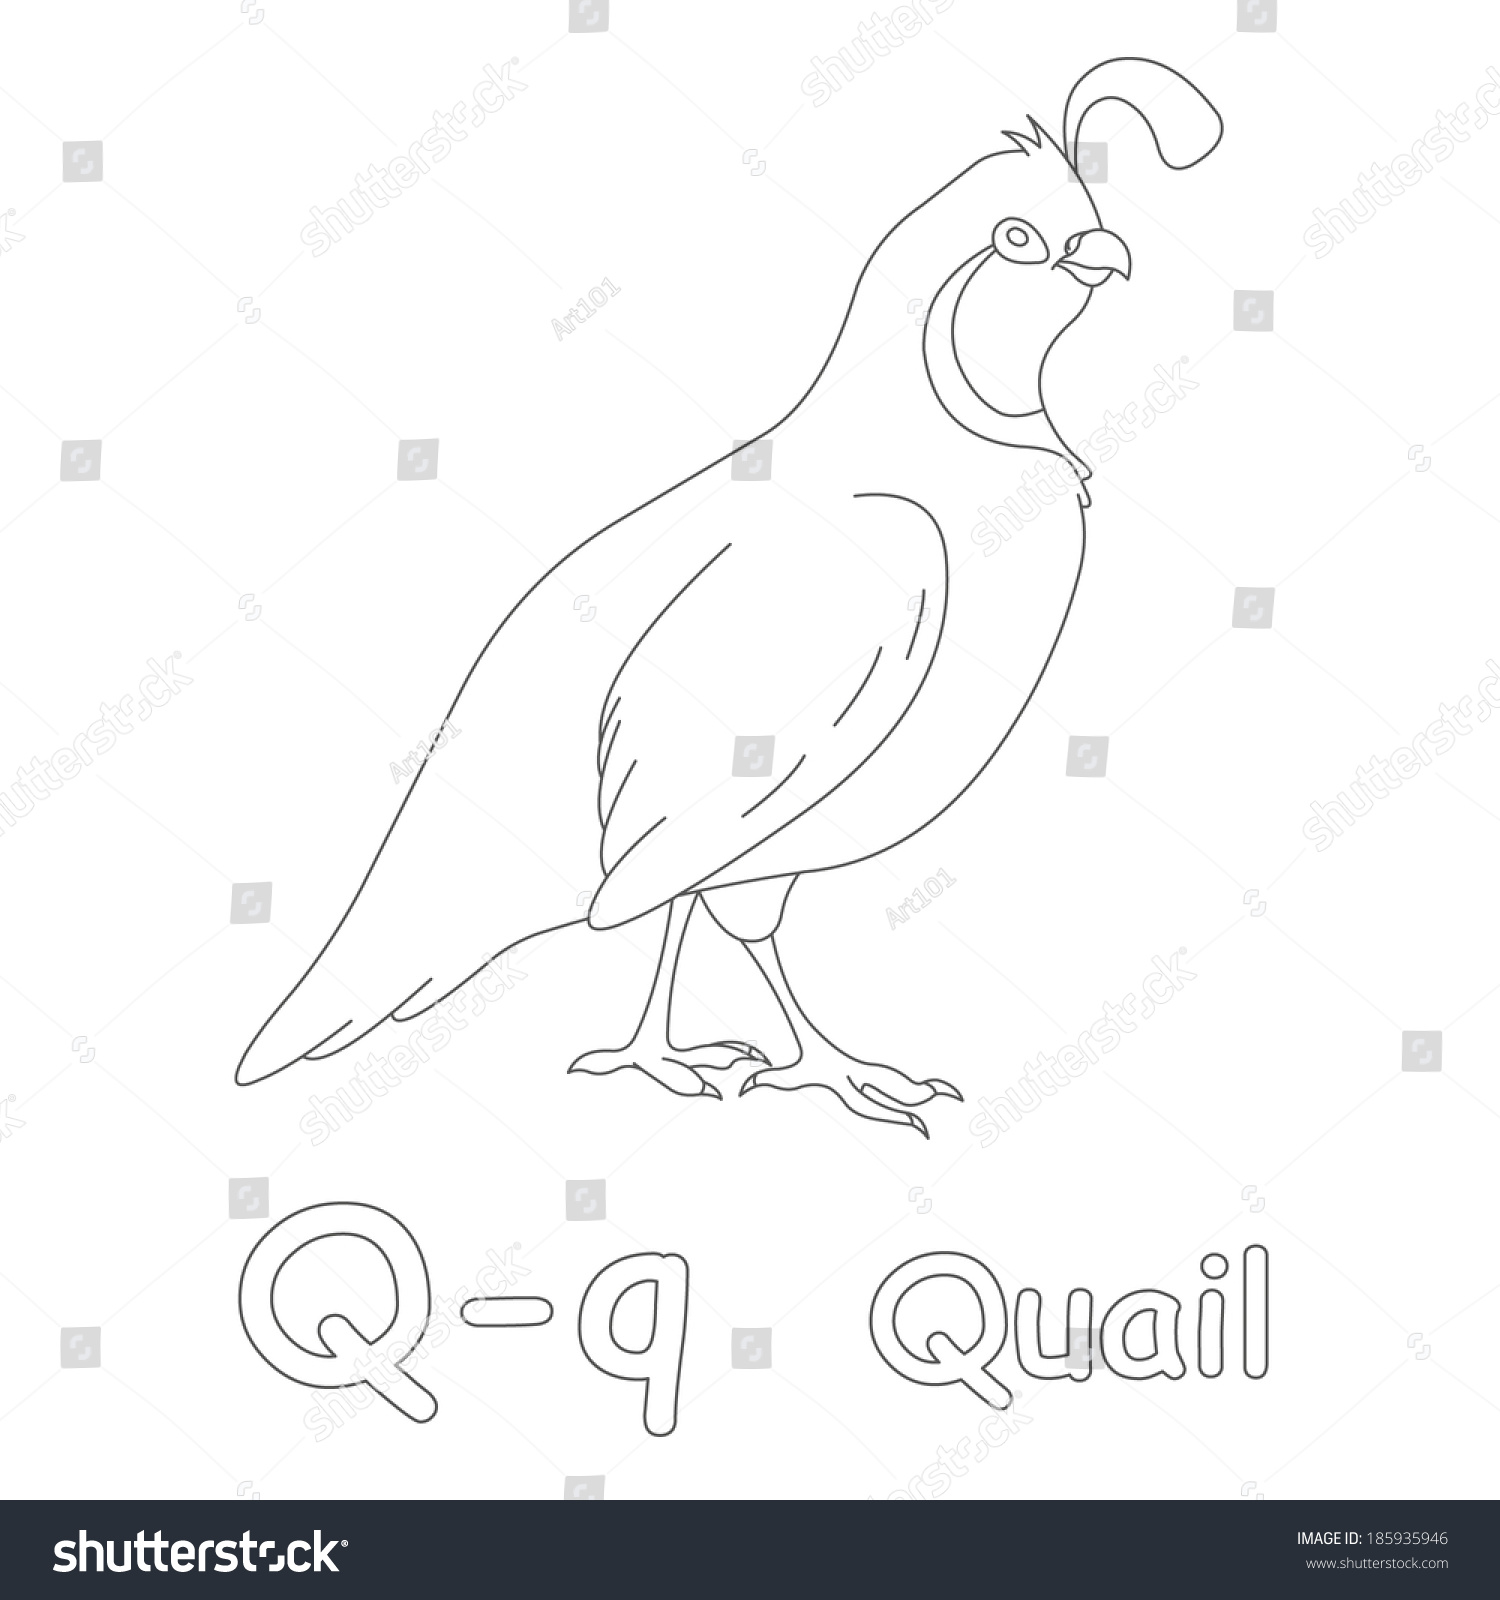 Q Quail Coloring Page Stock Illustration 185935946 - Shutterstock